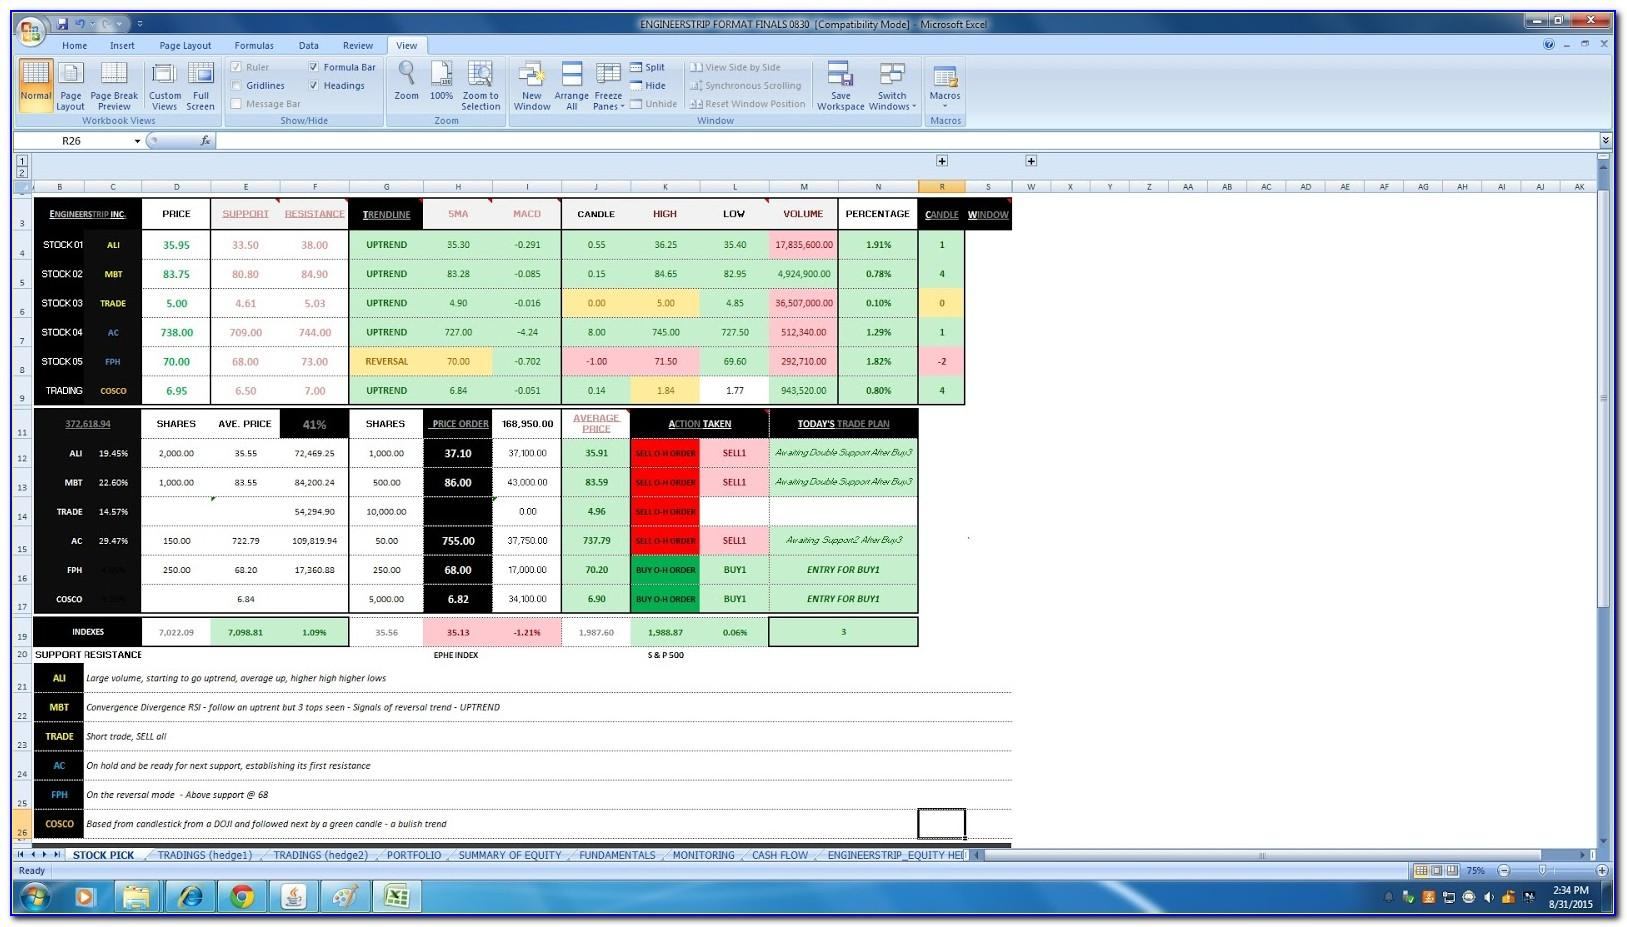 Stock Valuation Spreadsheet Template